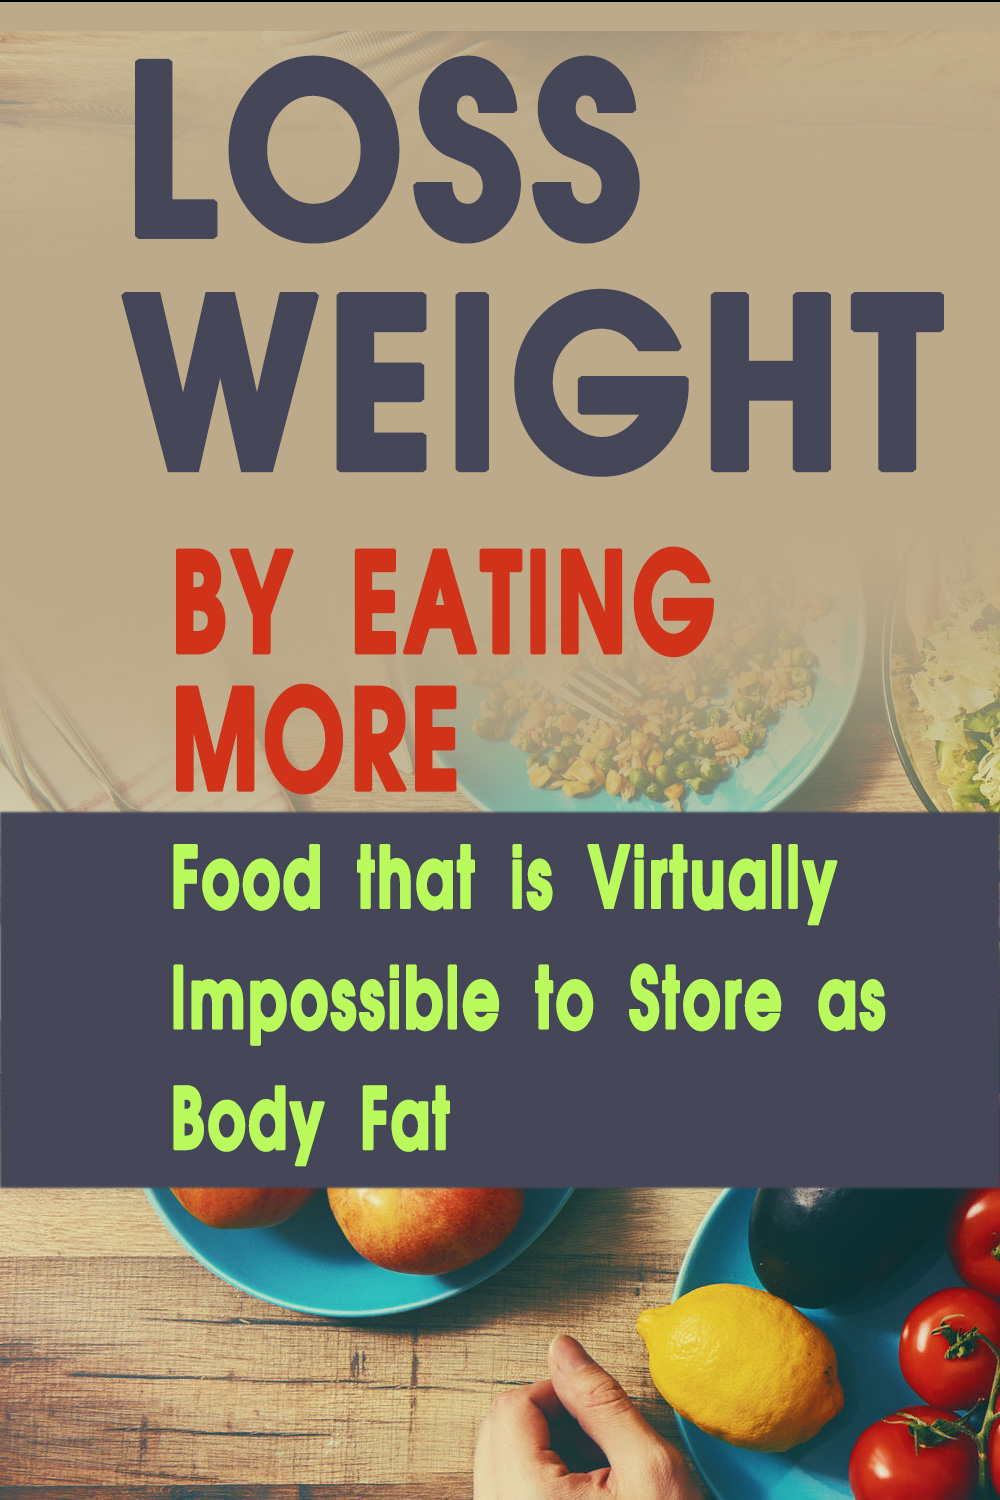 wight loss by eating more